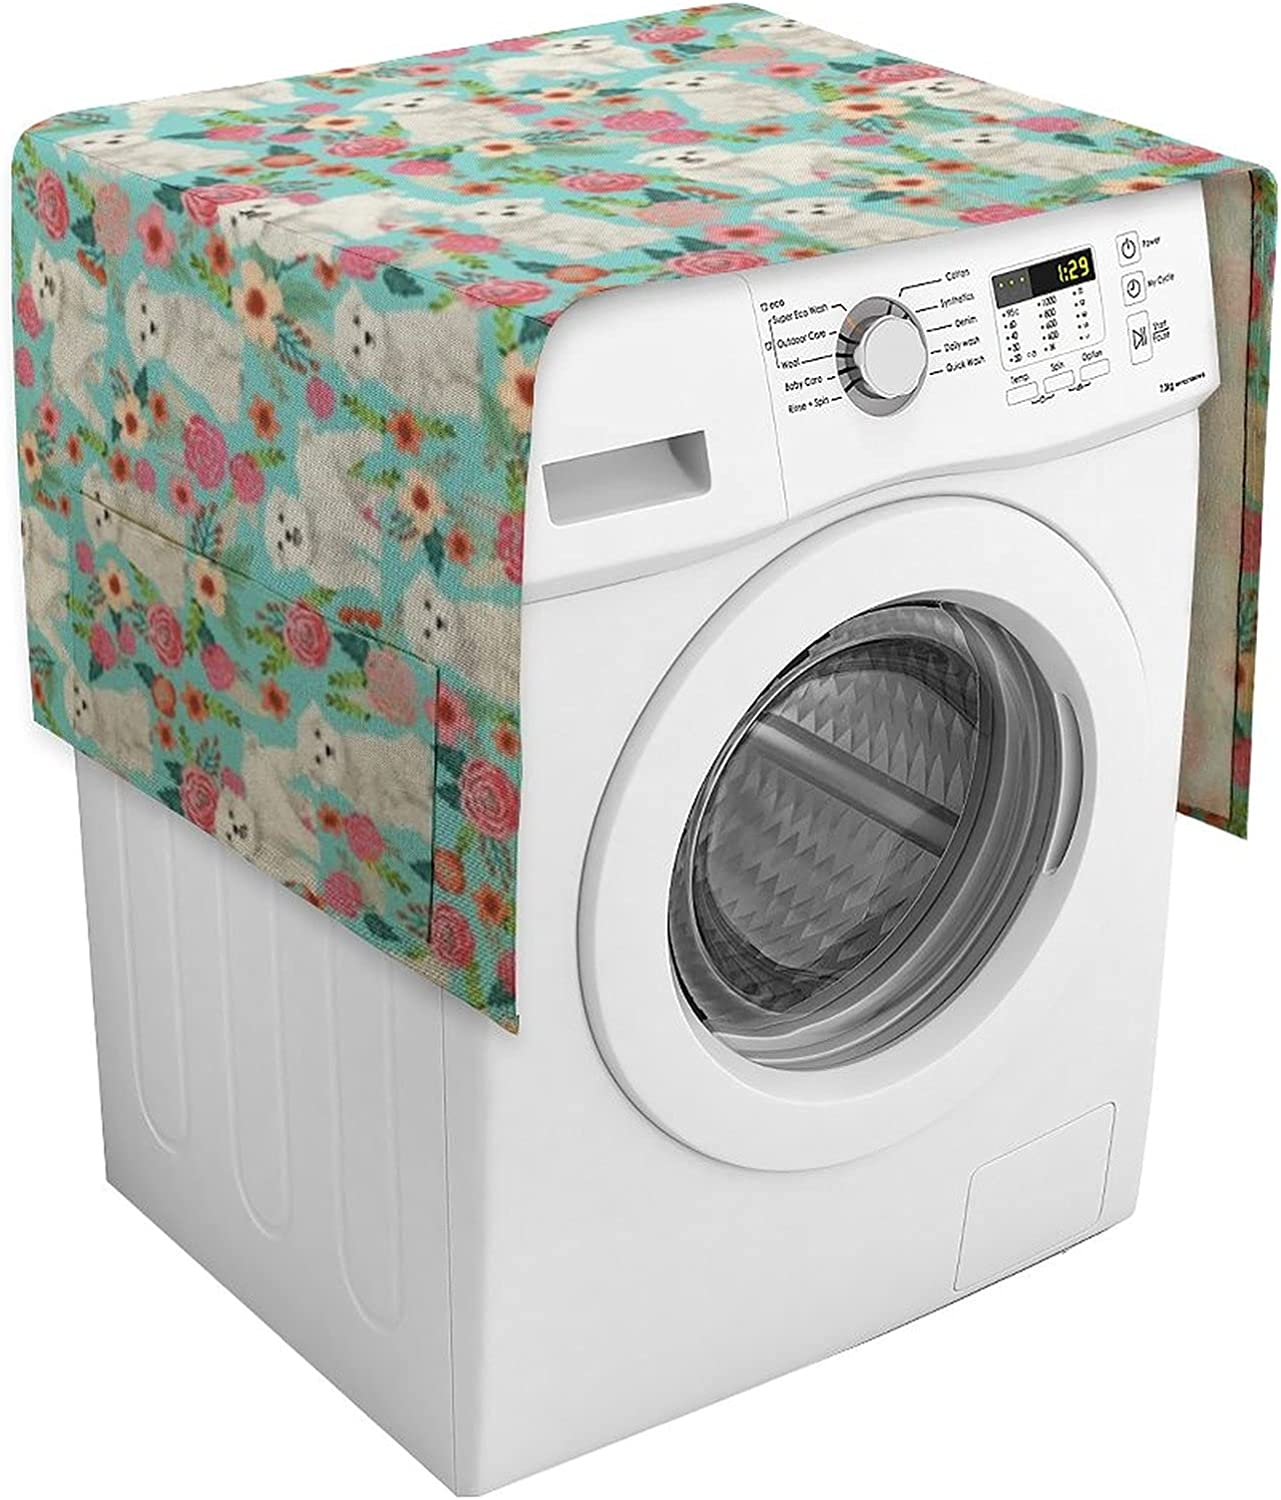 Multi-Purpose Washing Machine Covers Houston Mall Appliance Protector Washer Selling